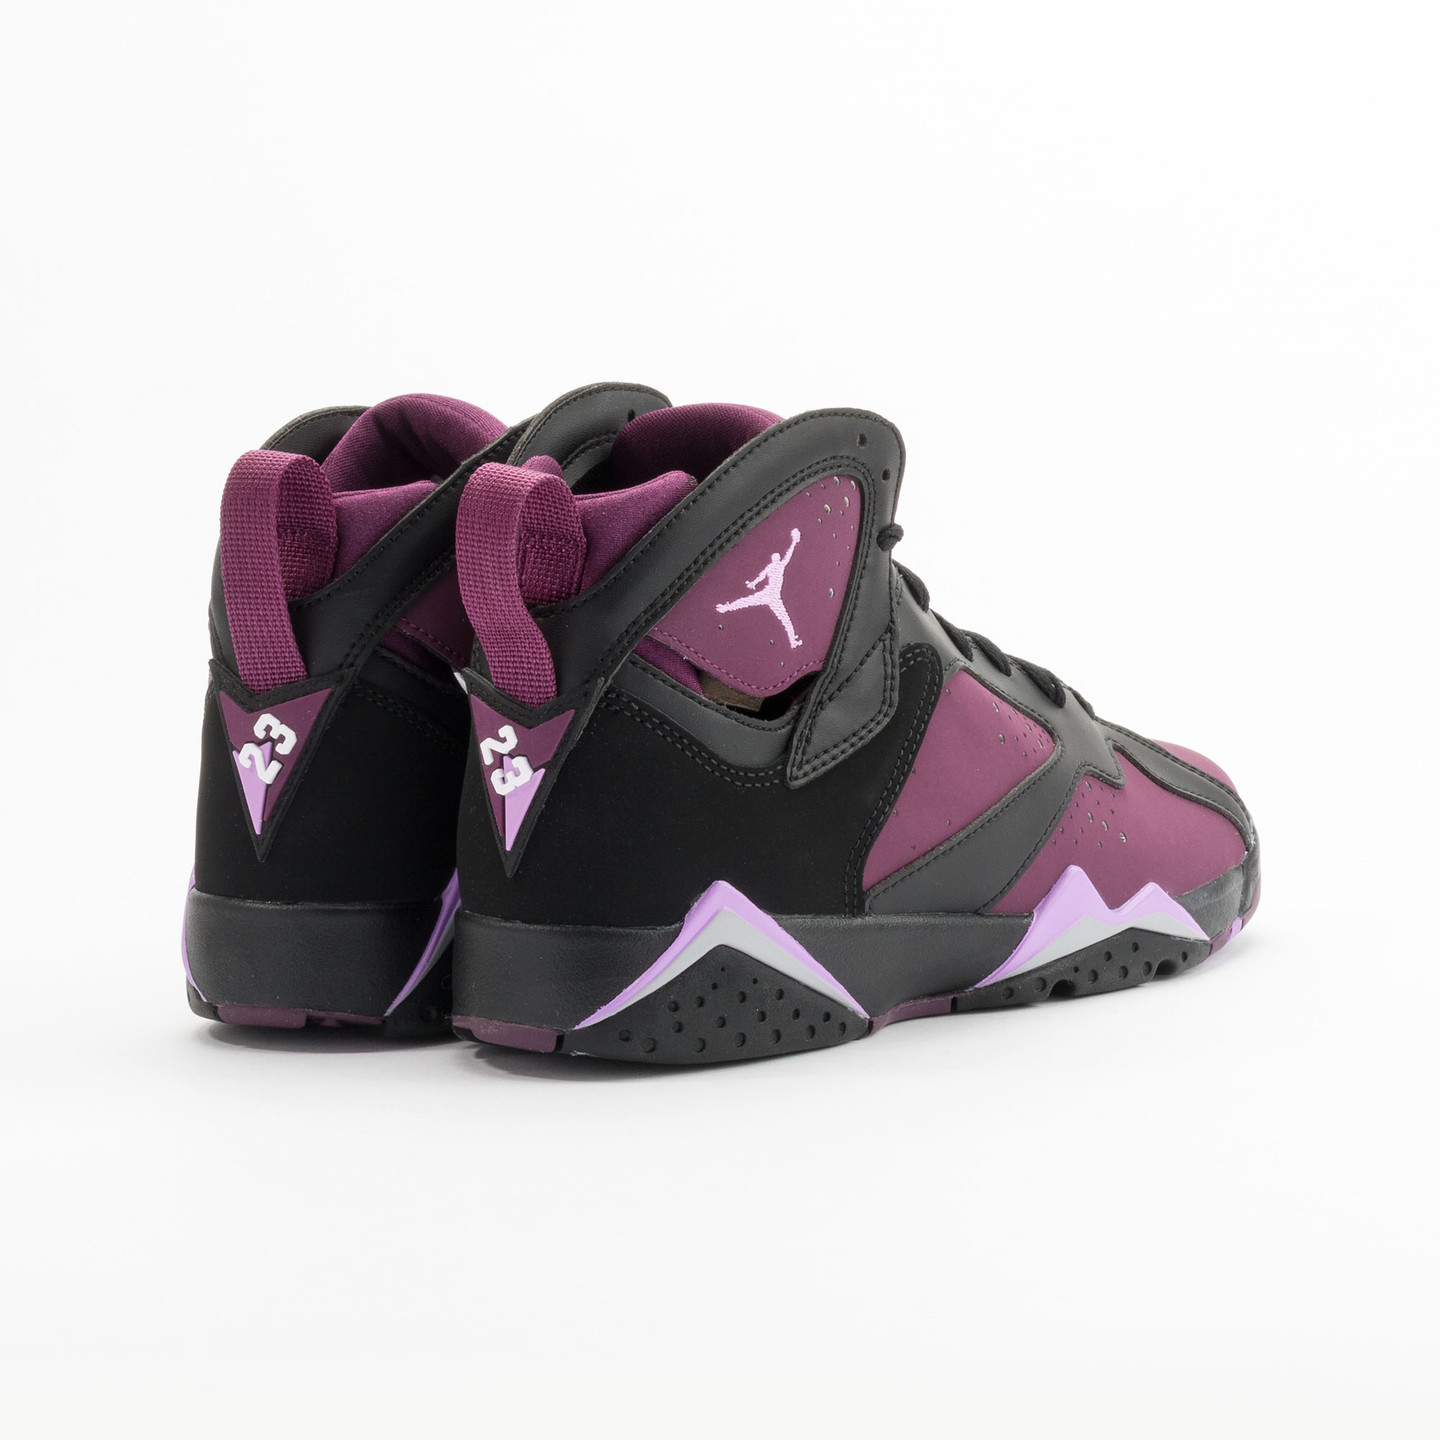 Jordan Air Jordan 7 Retro GG Mulberry / Fuchsia / Black 442960-009-40